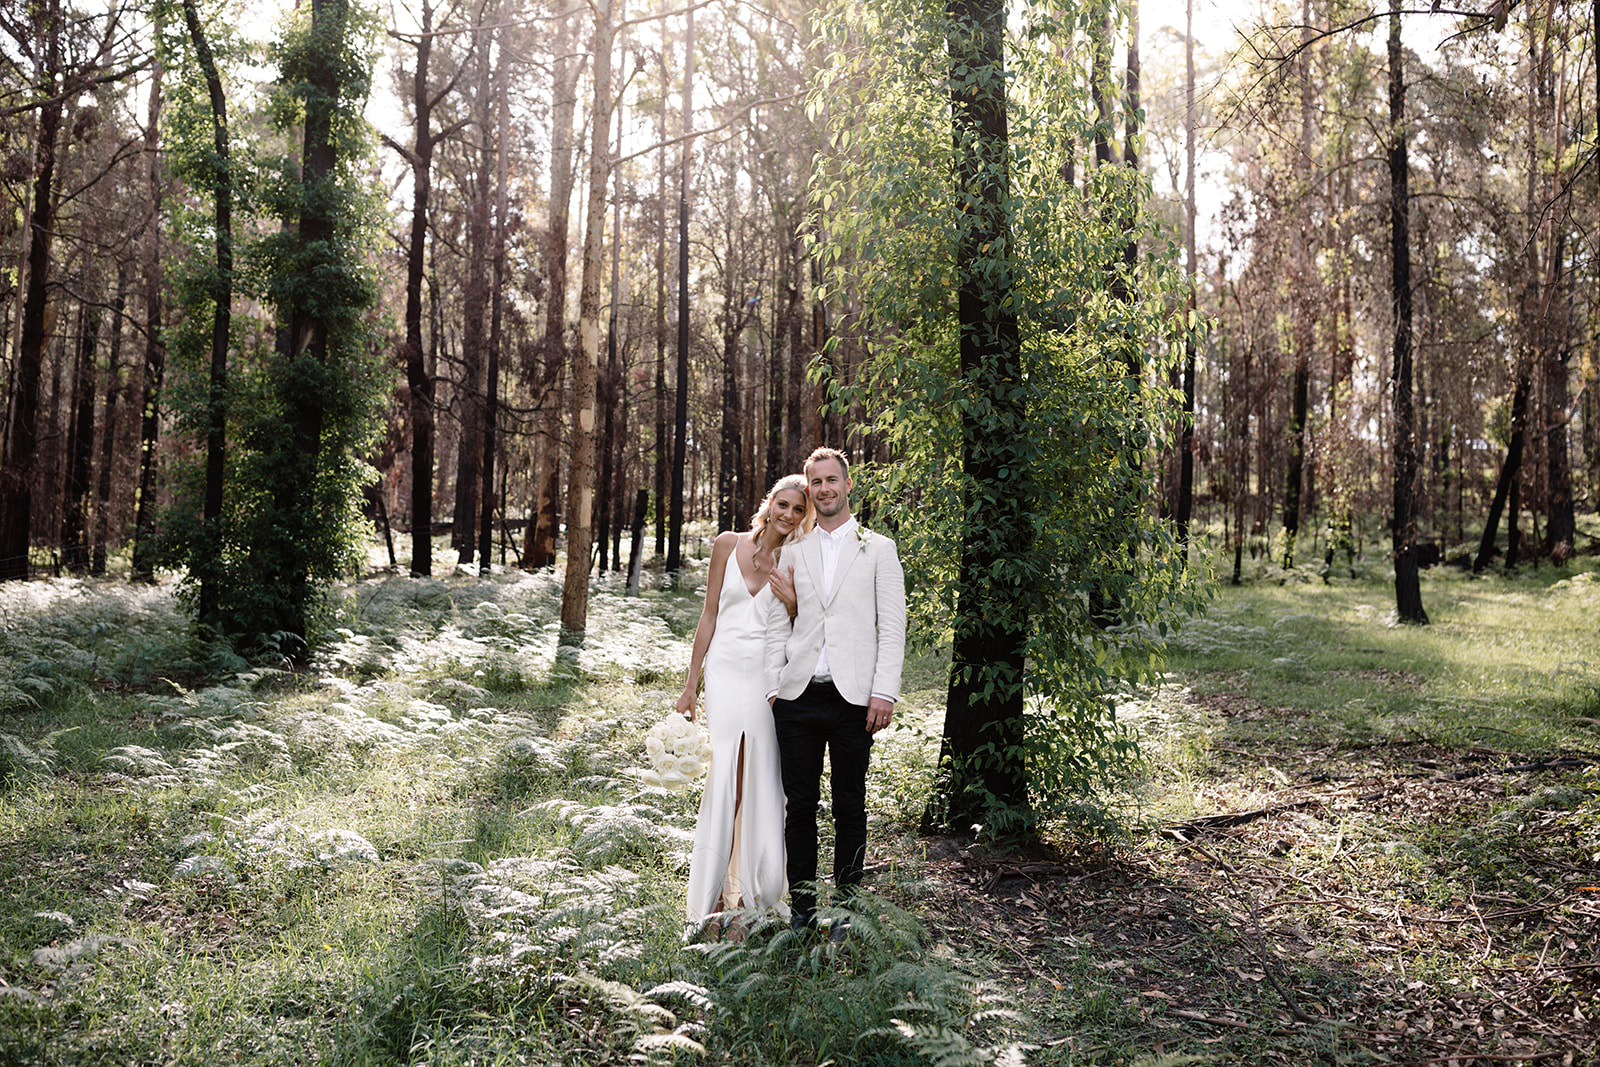 Wedding photo inspiration in the bush, Bawley NSW